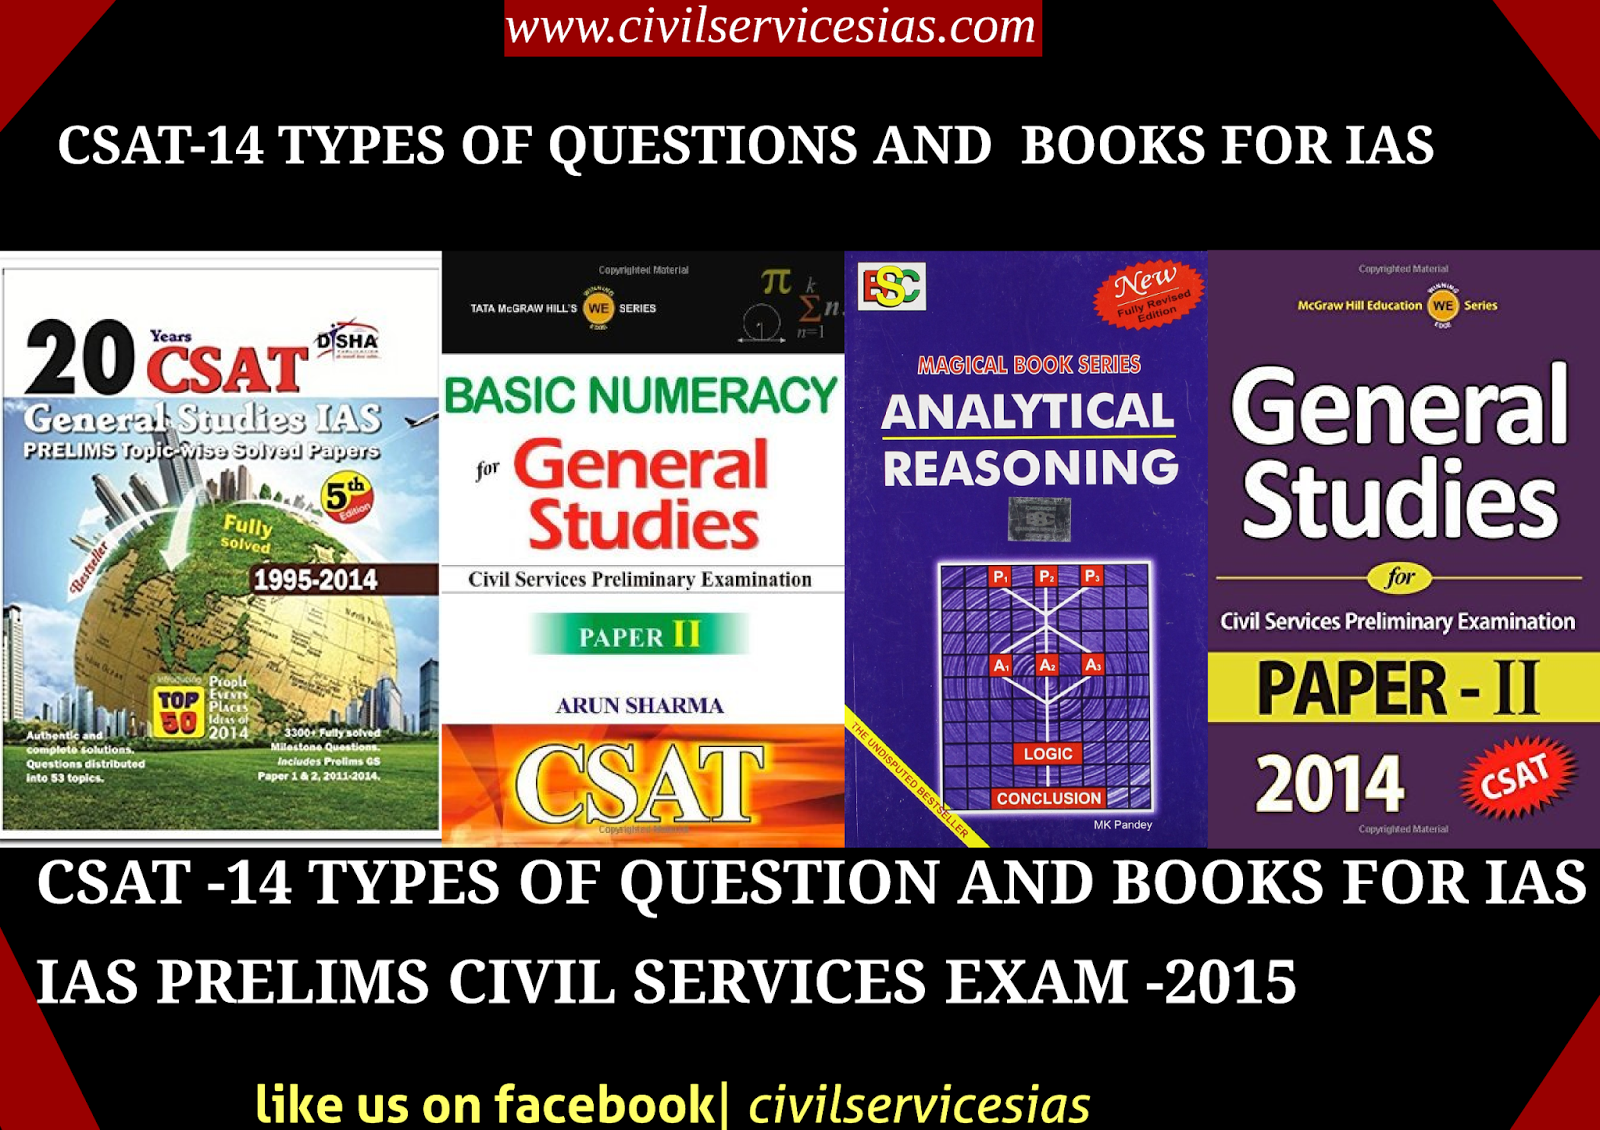 CSAT-2015,GS 2,IAS,IPS,UPSS,CIVIL SERVICES EXAM,PRELIMS